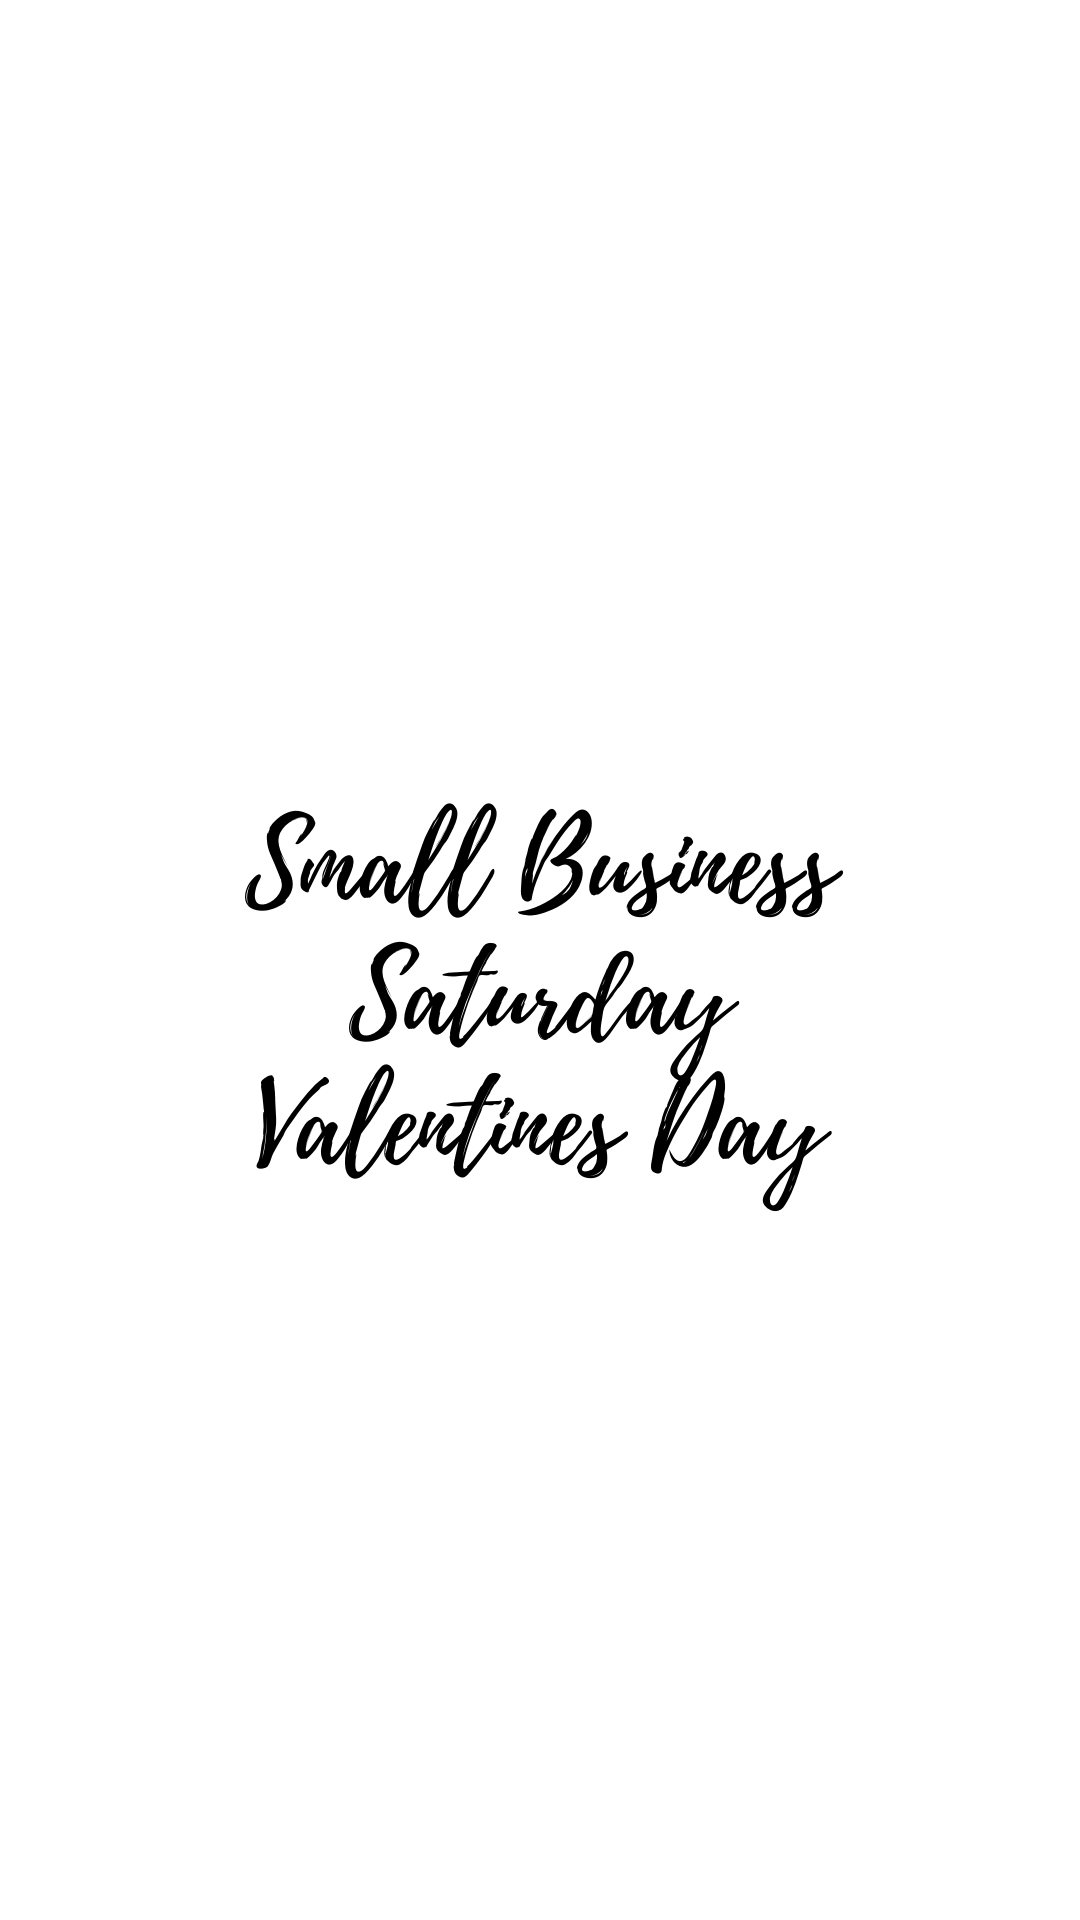 Small Business Saturday-Valentine's Day